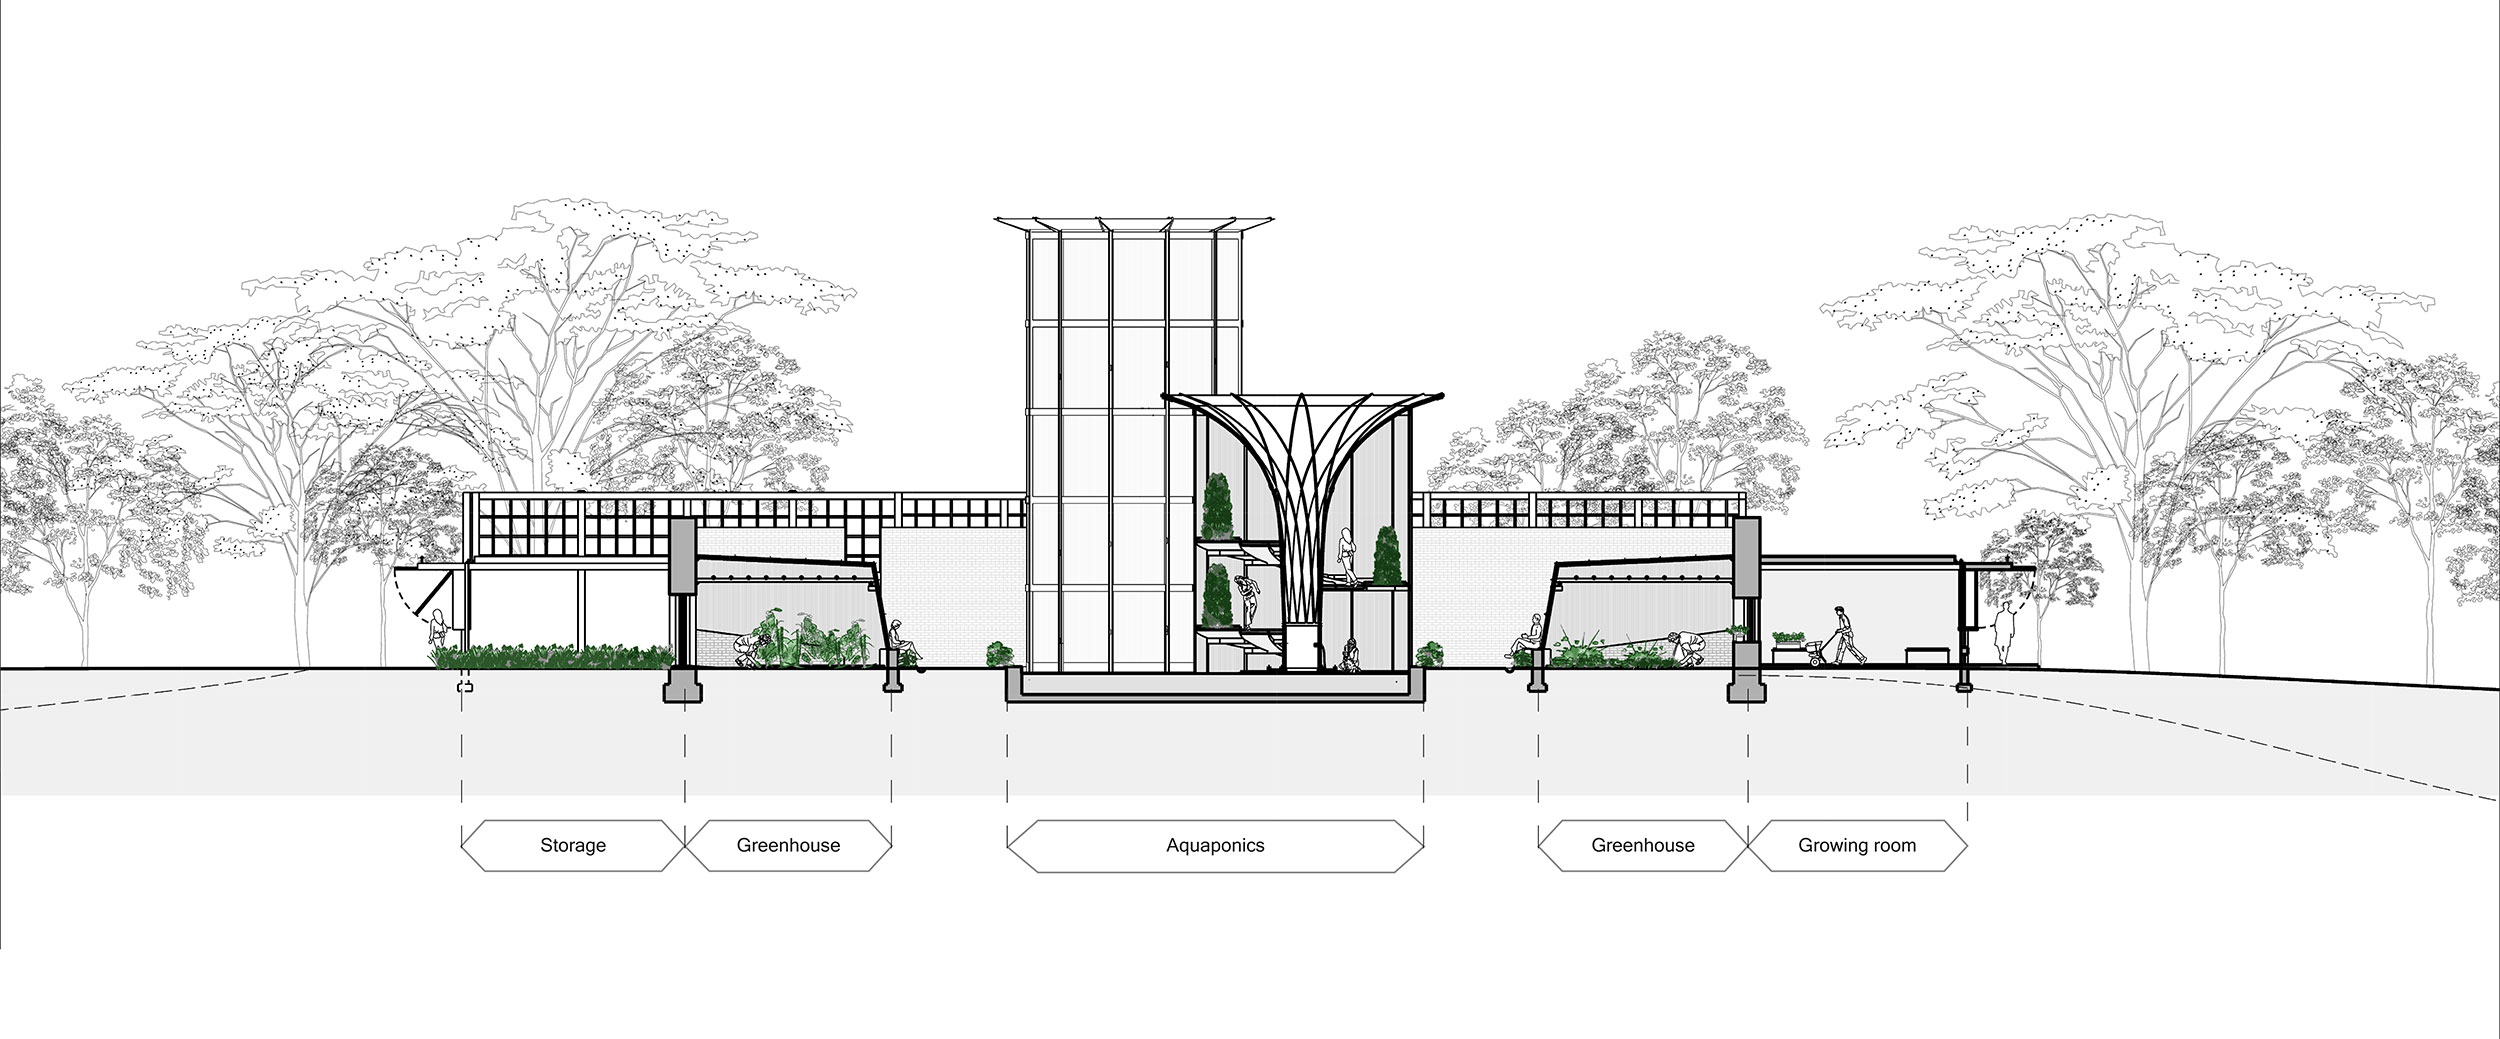 Cross-section through educational facilities. Aquaponics and greenhouse growing facilities, located internally to the walled garden [DOES THIS MEAN: facilities in the walled garden, ?JD] are surrounded by supporting facilities